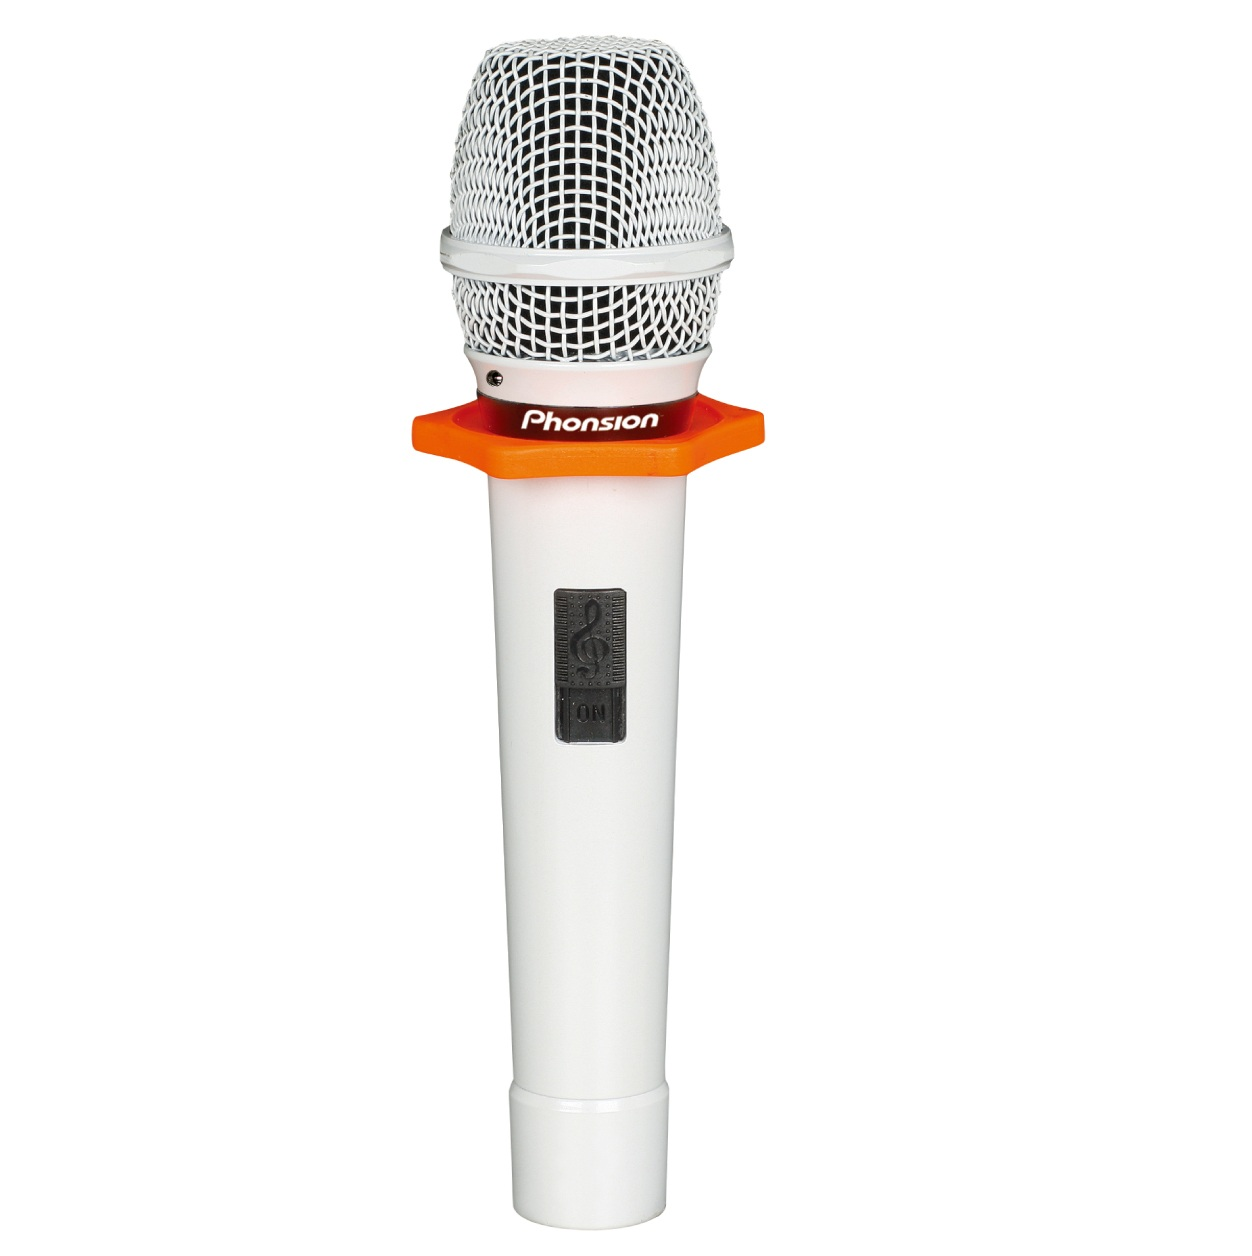 PT-788 Wired microphone